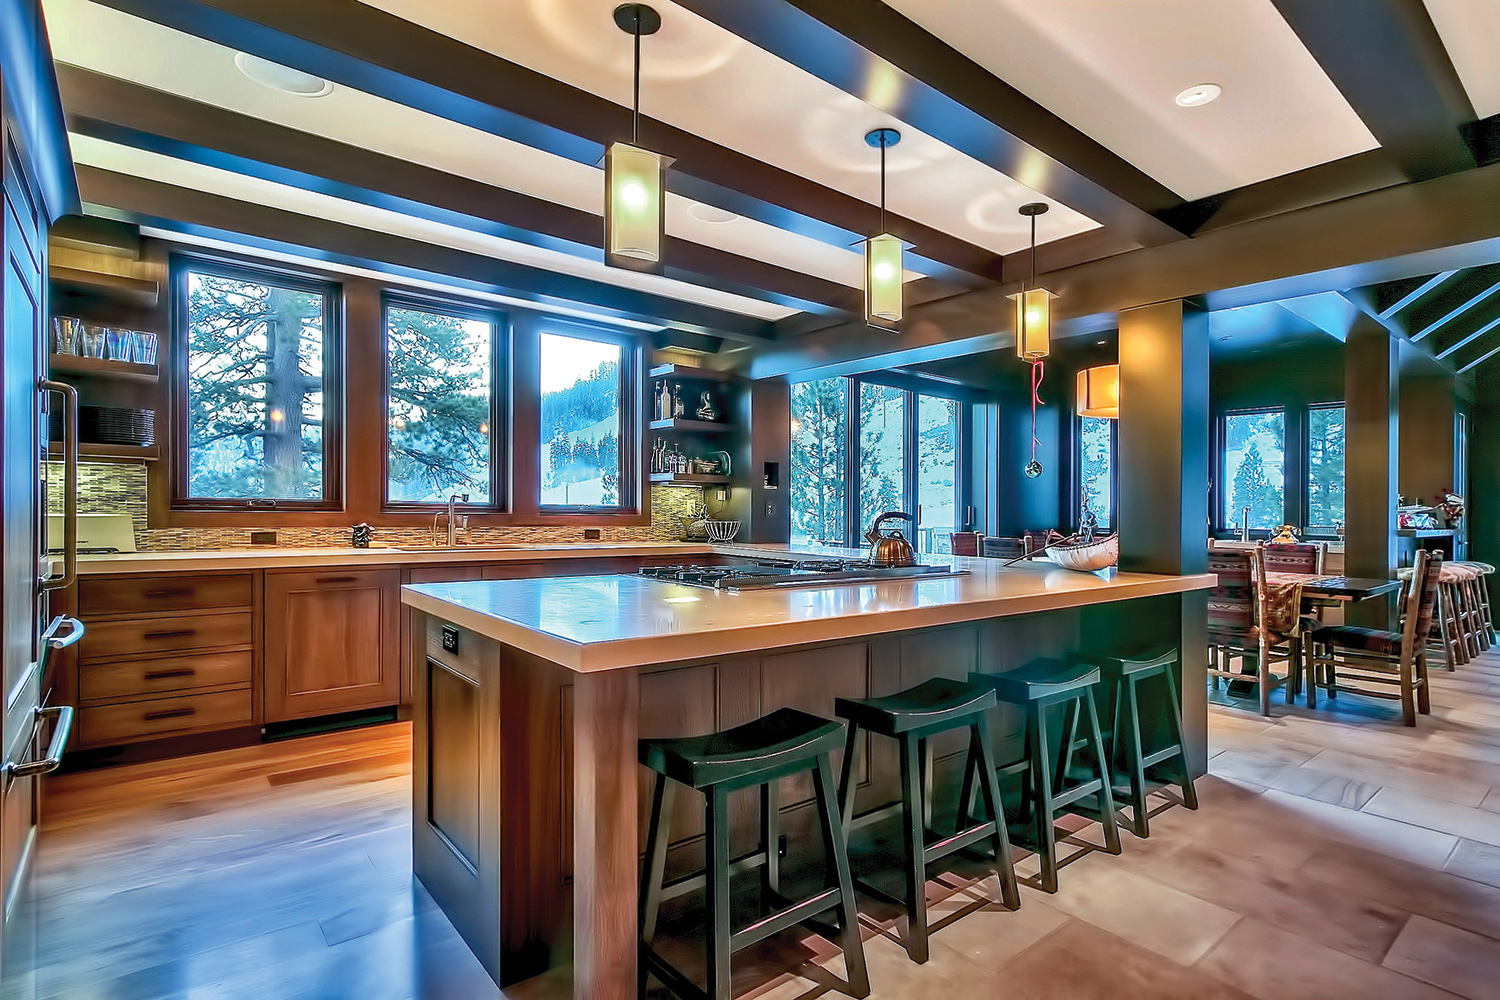 249 Granite Chief, Squaw Valley,  listed with Overall & Hamilton Group for $4,495,000